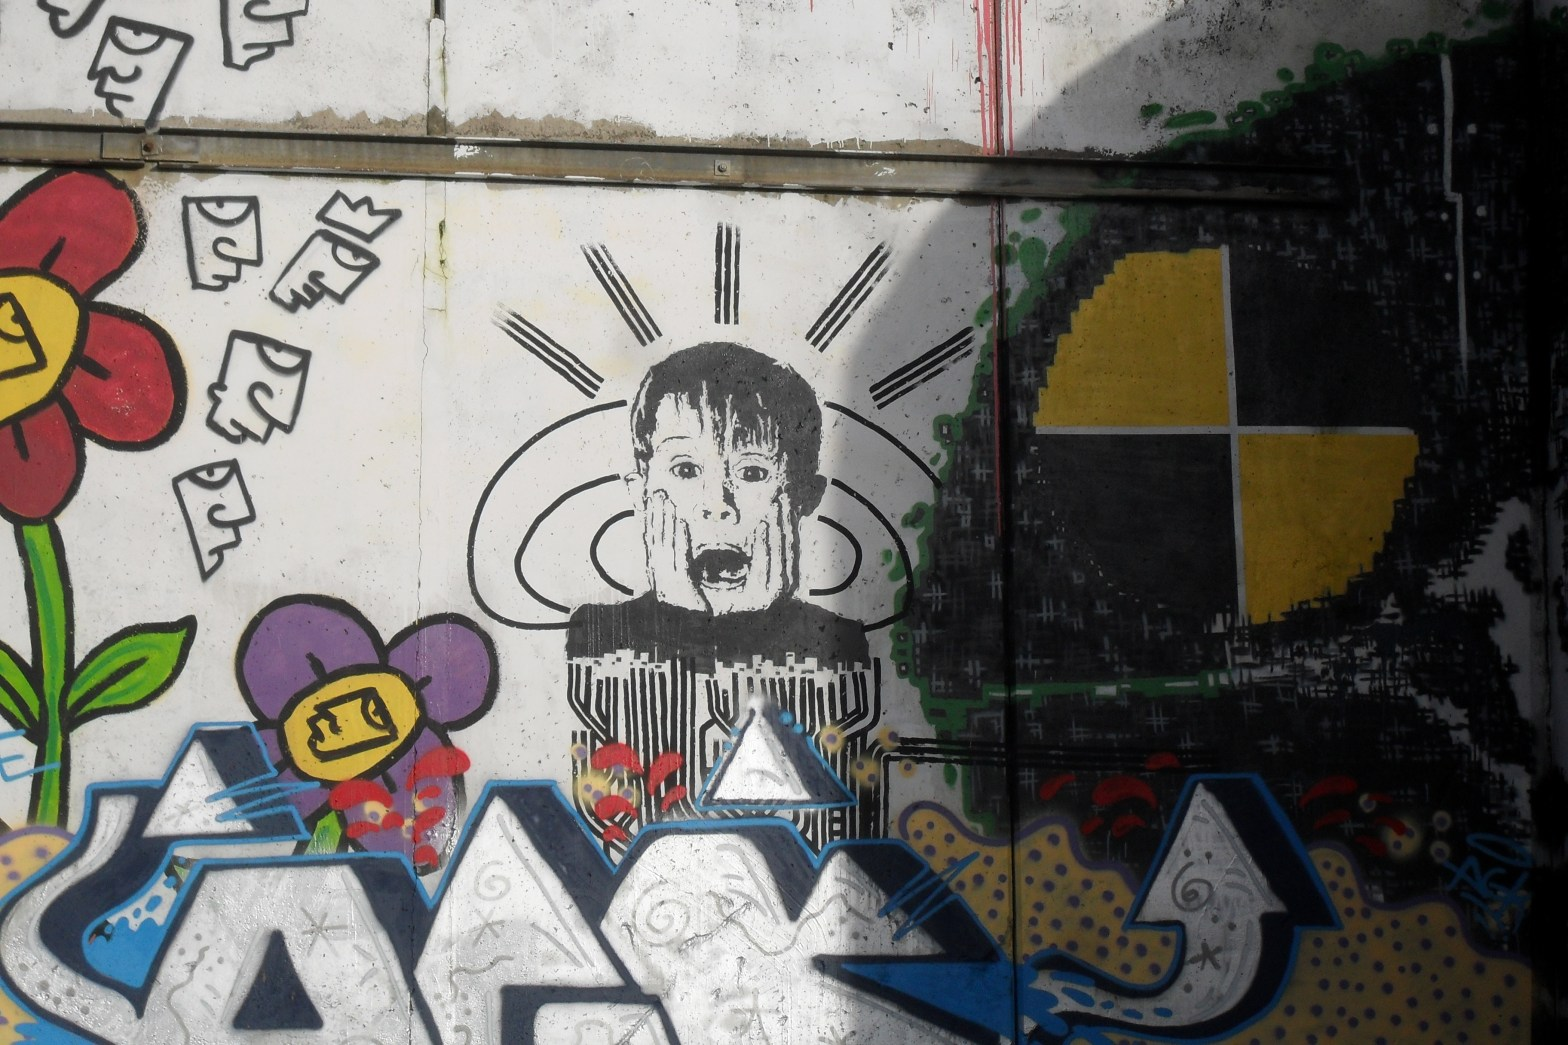 A photo of a wall depicting traditional looking graffiti. in the center is a spray-painted image of Macaulay culkin in the role of Kevin McCallister, doing the iconic hands on face yelling manuever.